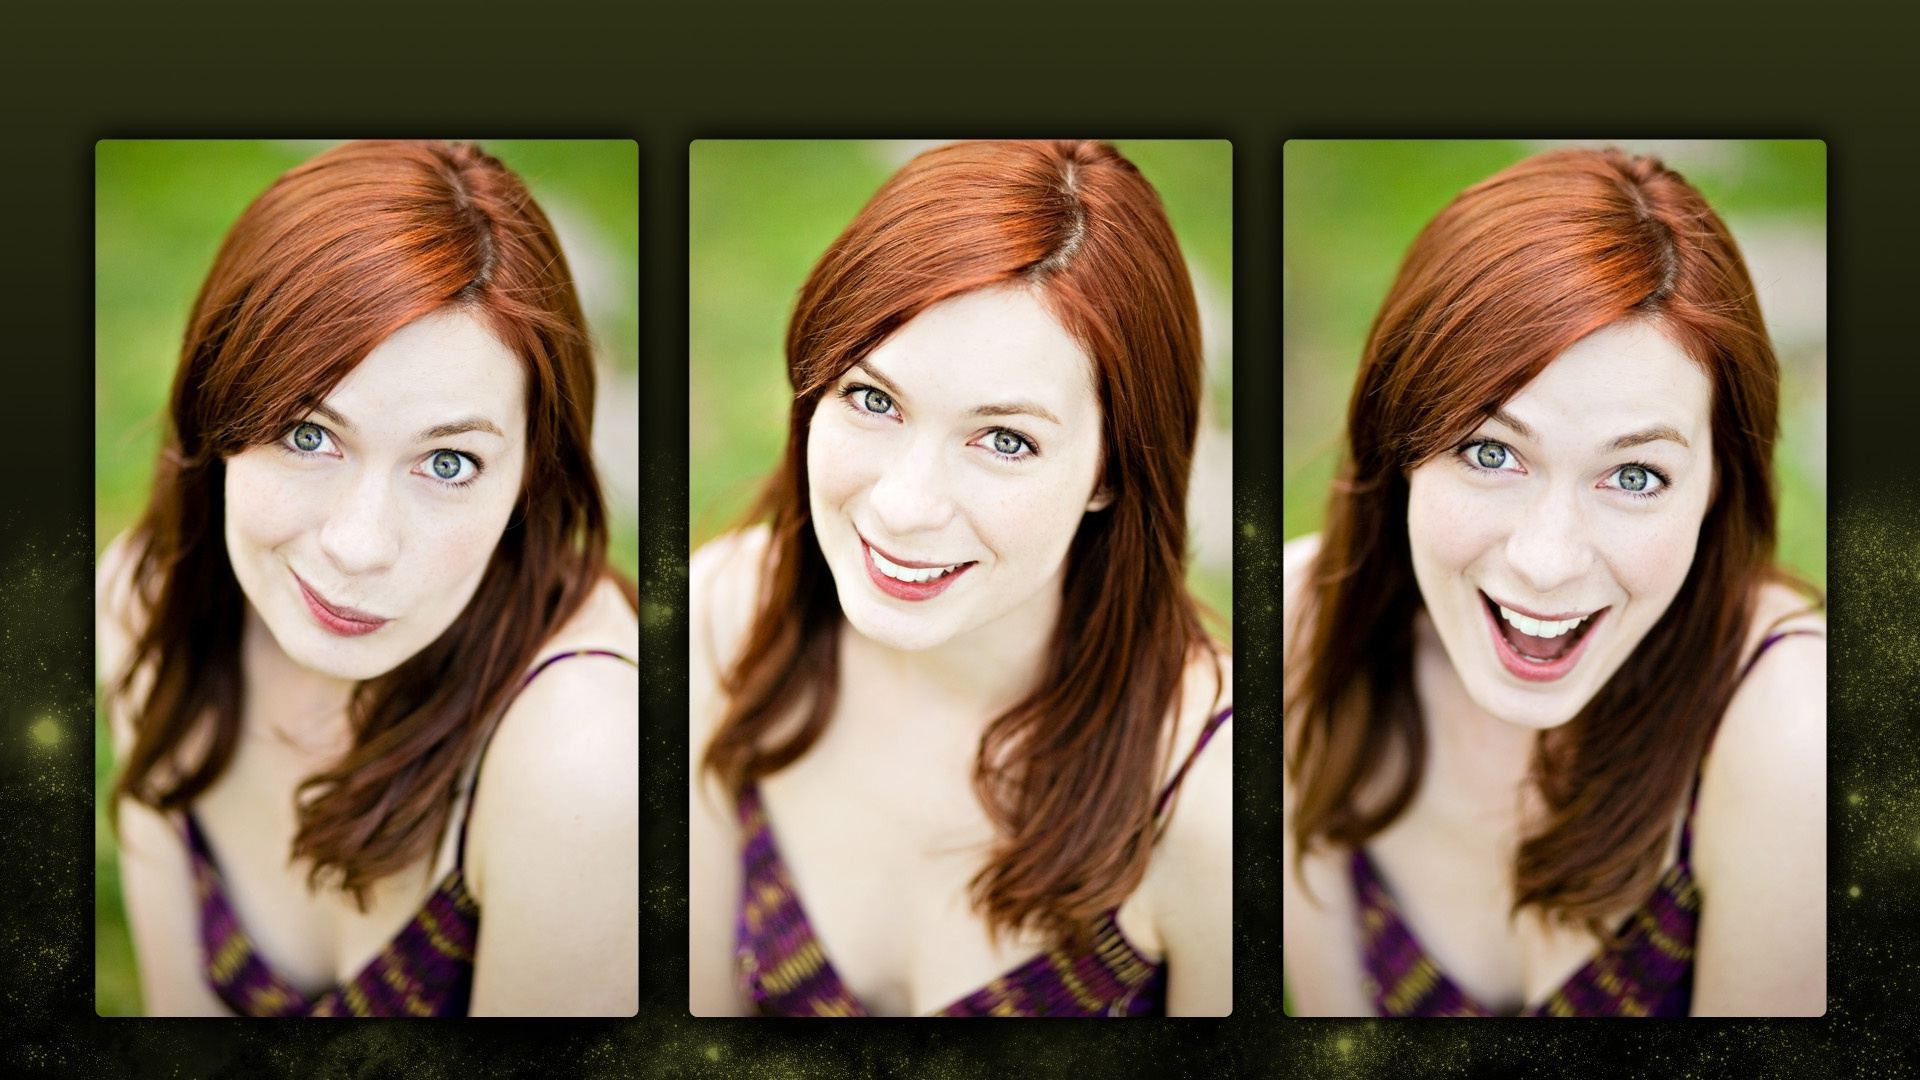 Res: 1920x1080, Felicia Day HD Wallpaper | Hintergrund |  | ID:598136 - Wallpaper  Abyss